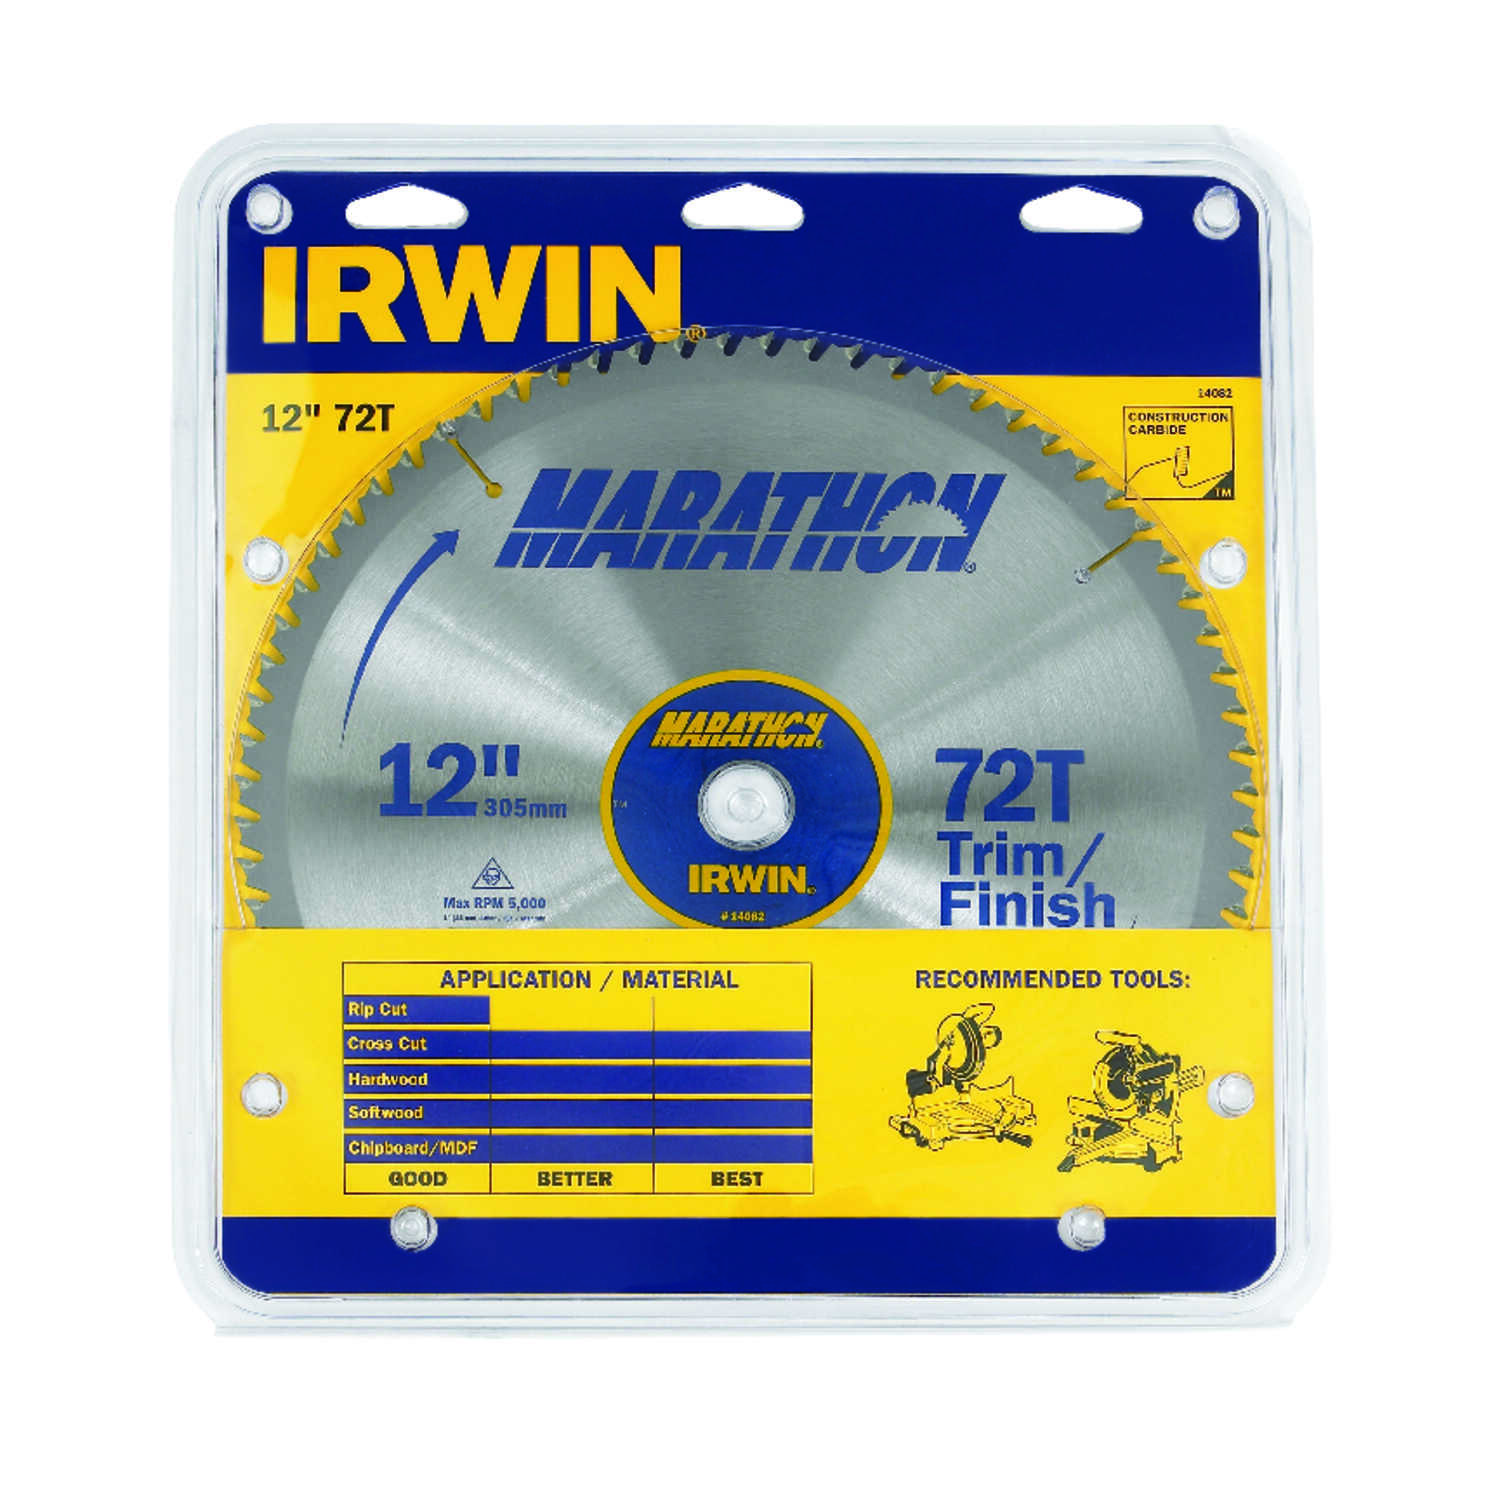 Irwin  Marathon  12 in. Dia. x 1 in.  Carbide  Miter and Table Saw Blade  72 teeth 1 pc.